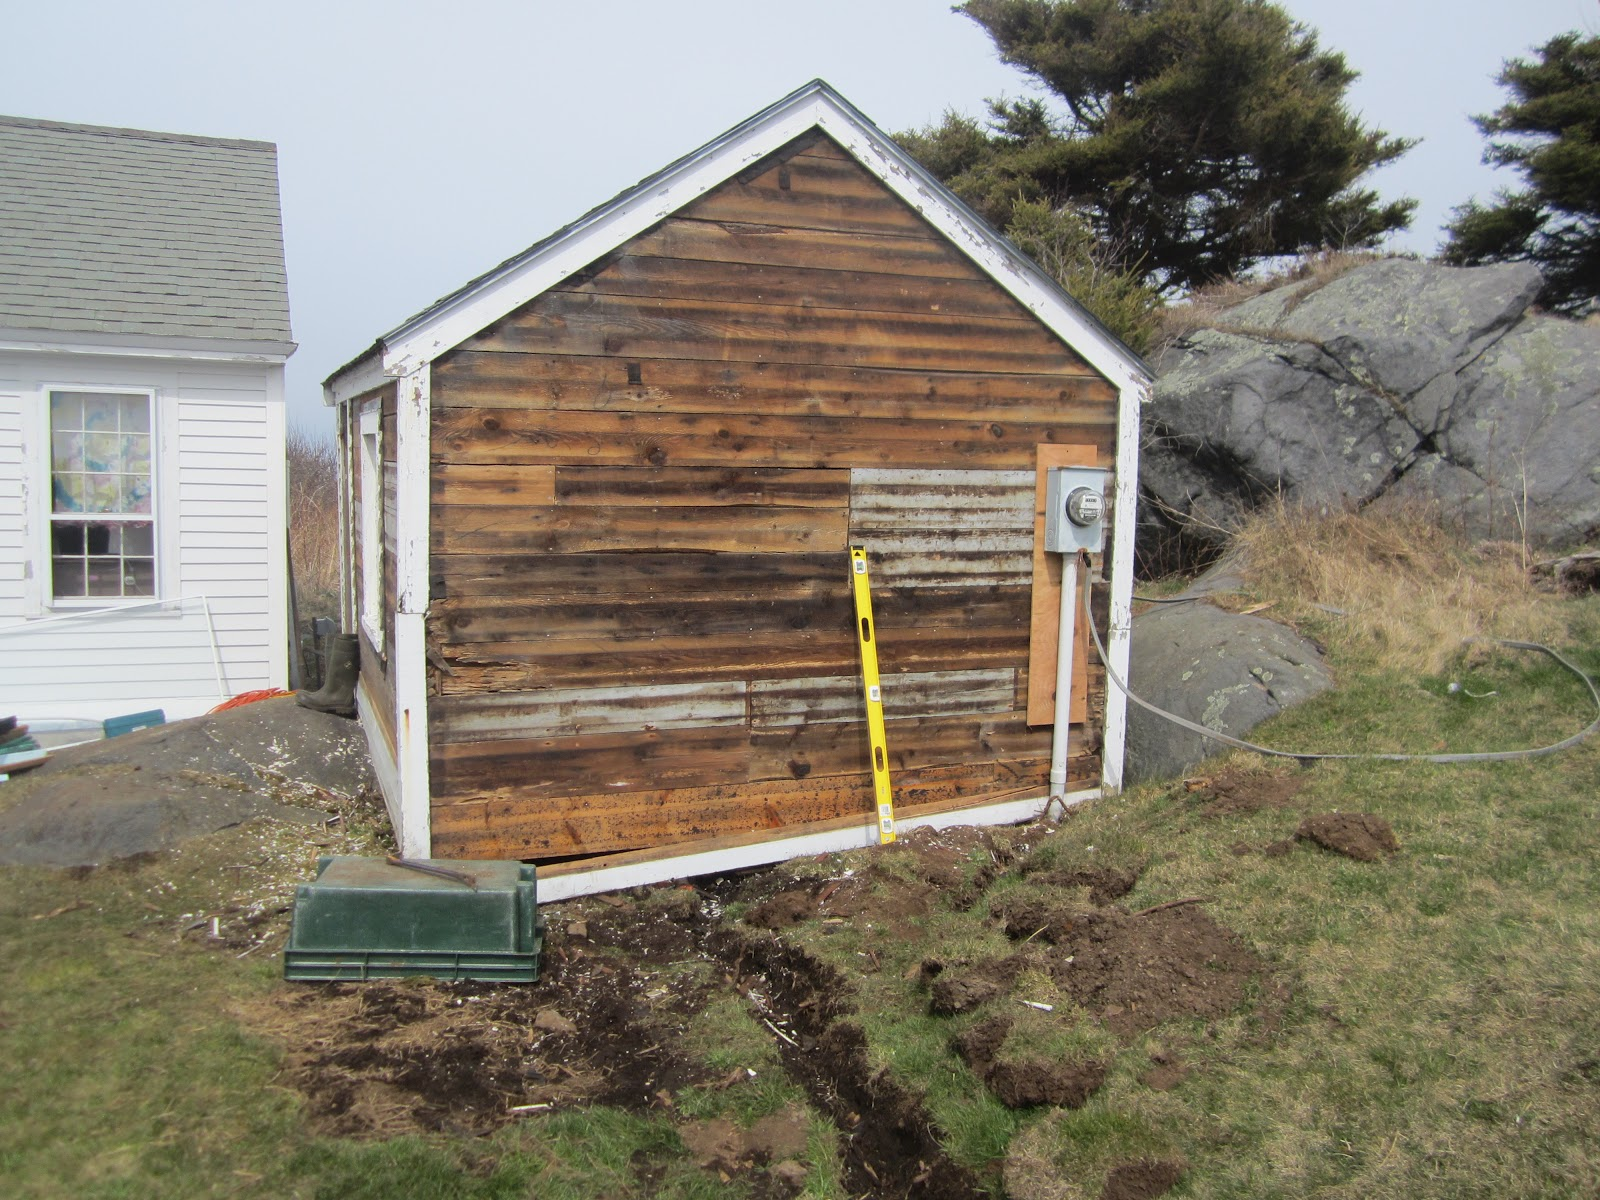 Shed Demolition Project : Monhegan madness shed project sheet rock demolition